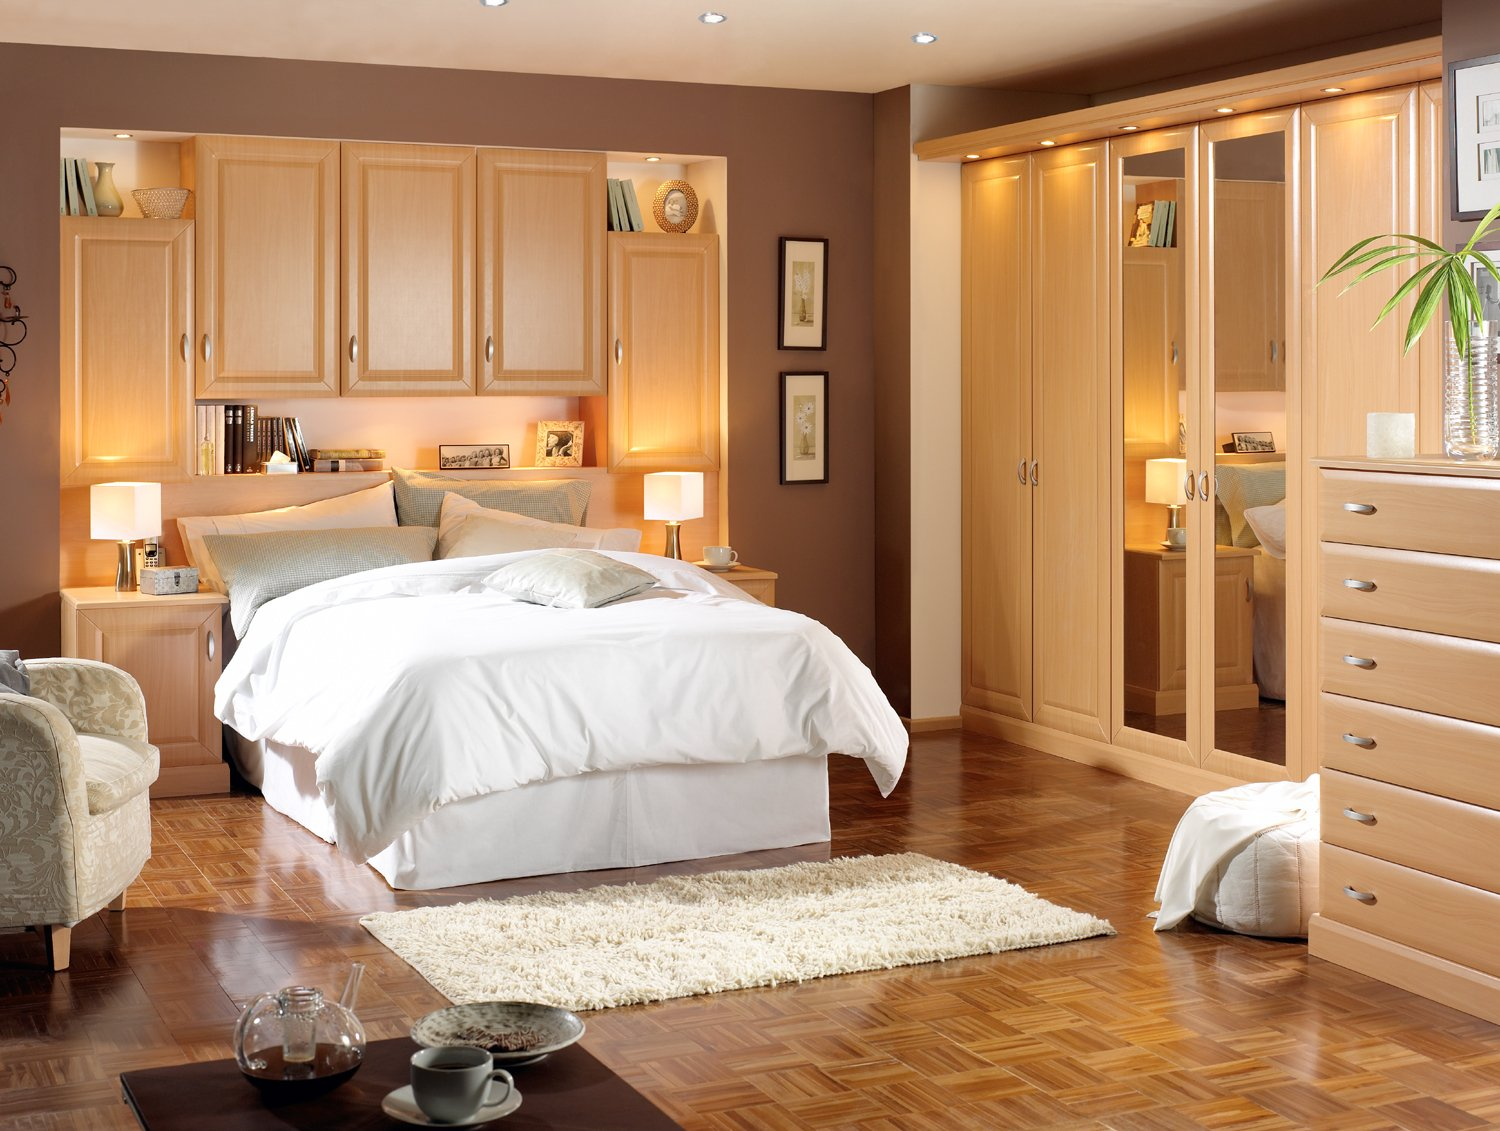 Bedrooms cupboard designs pictures an interior design for Pics of bedroom designs